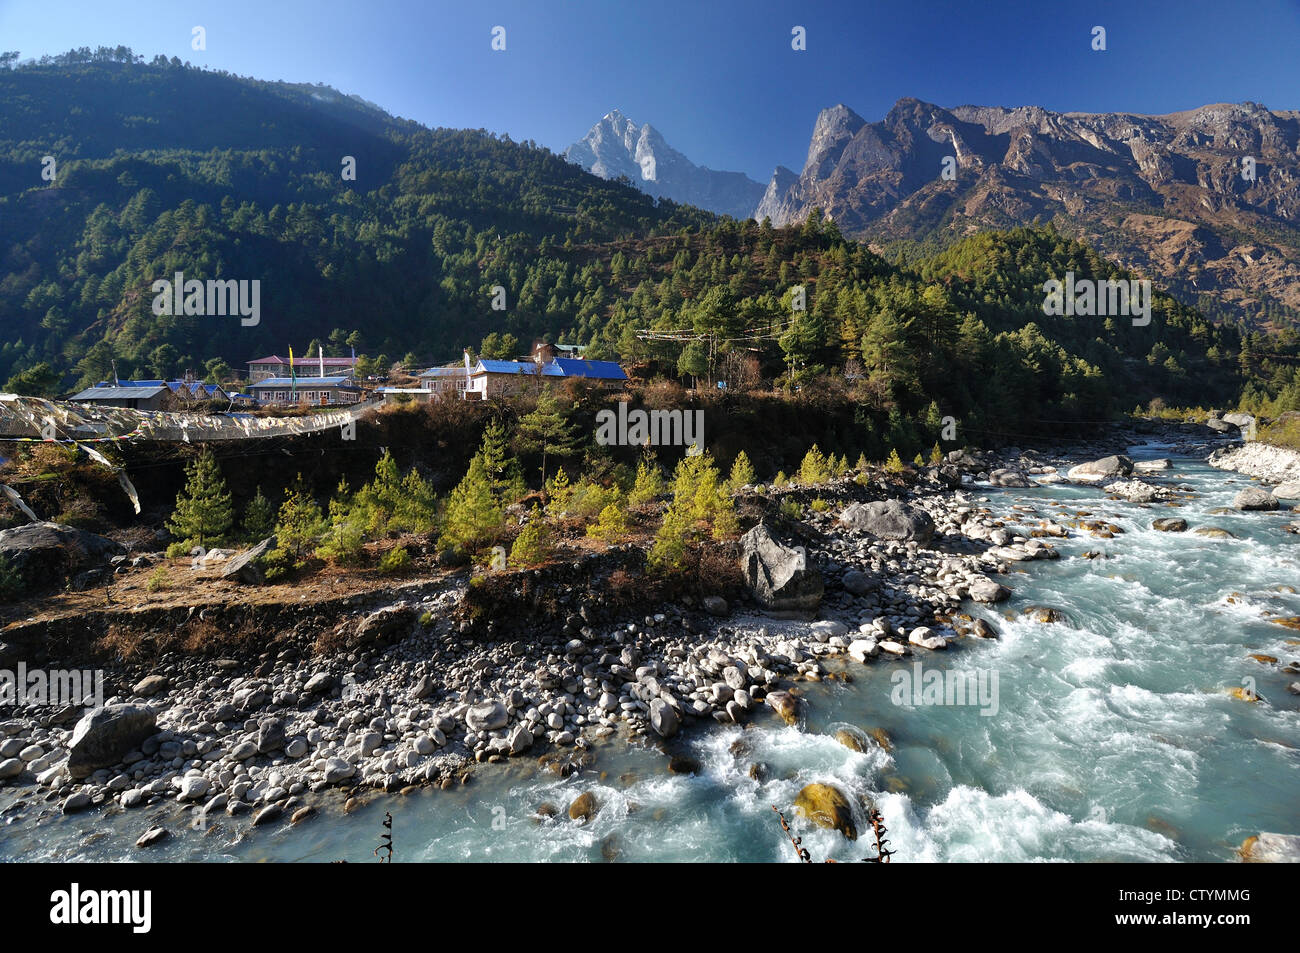 The main Trekking Trial To Everest Base Camp begins As you Cross the footbridge to Phakding - Stock Image